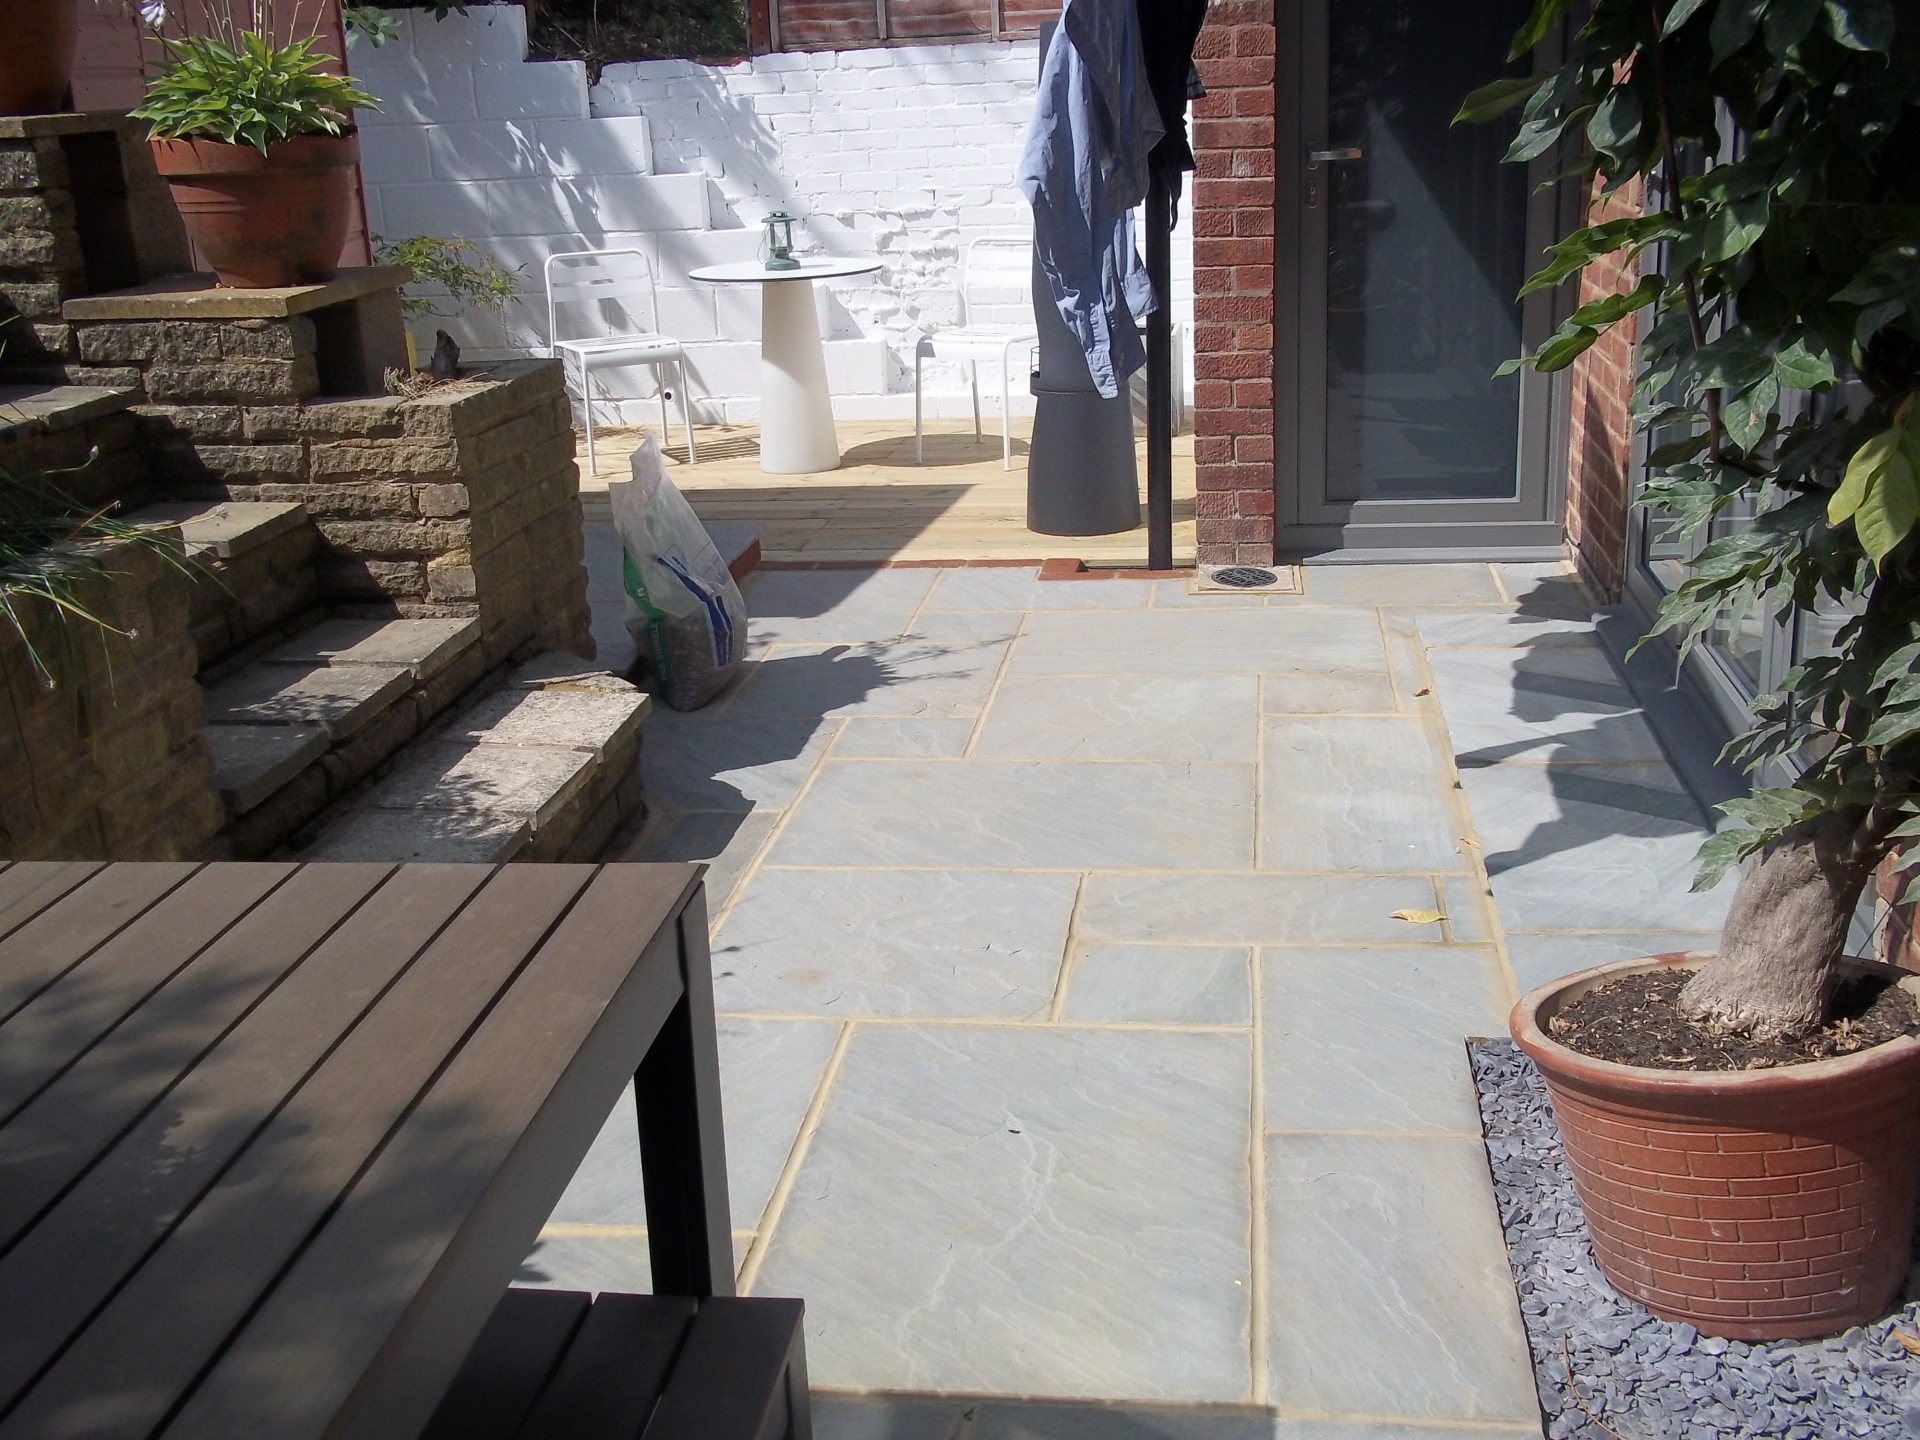 Patio and decking area.